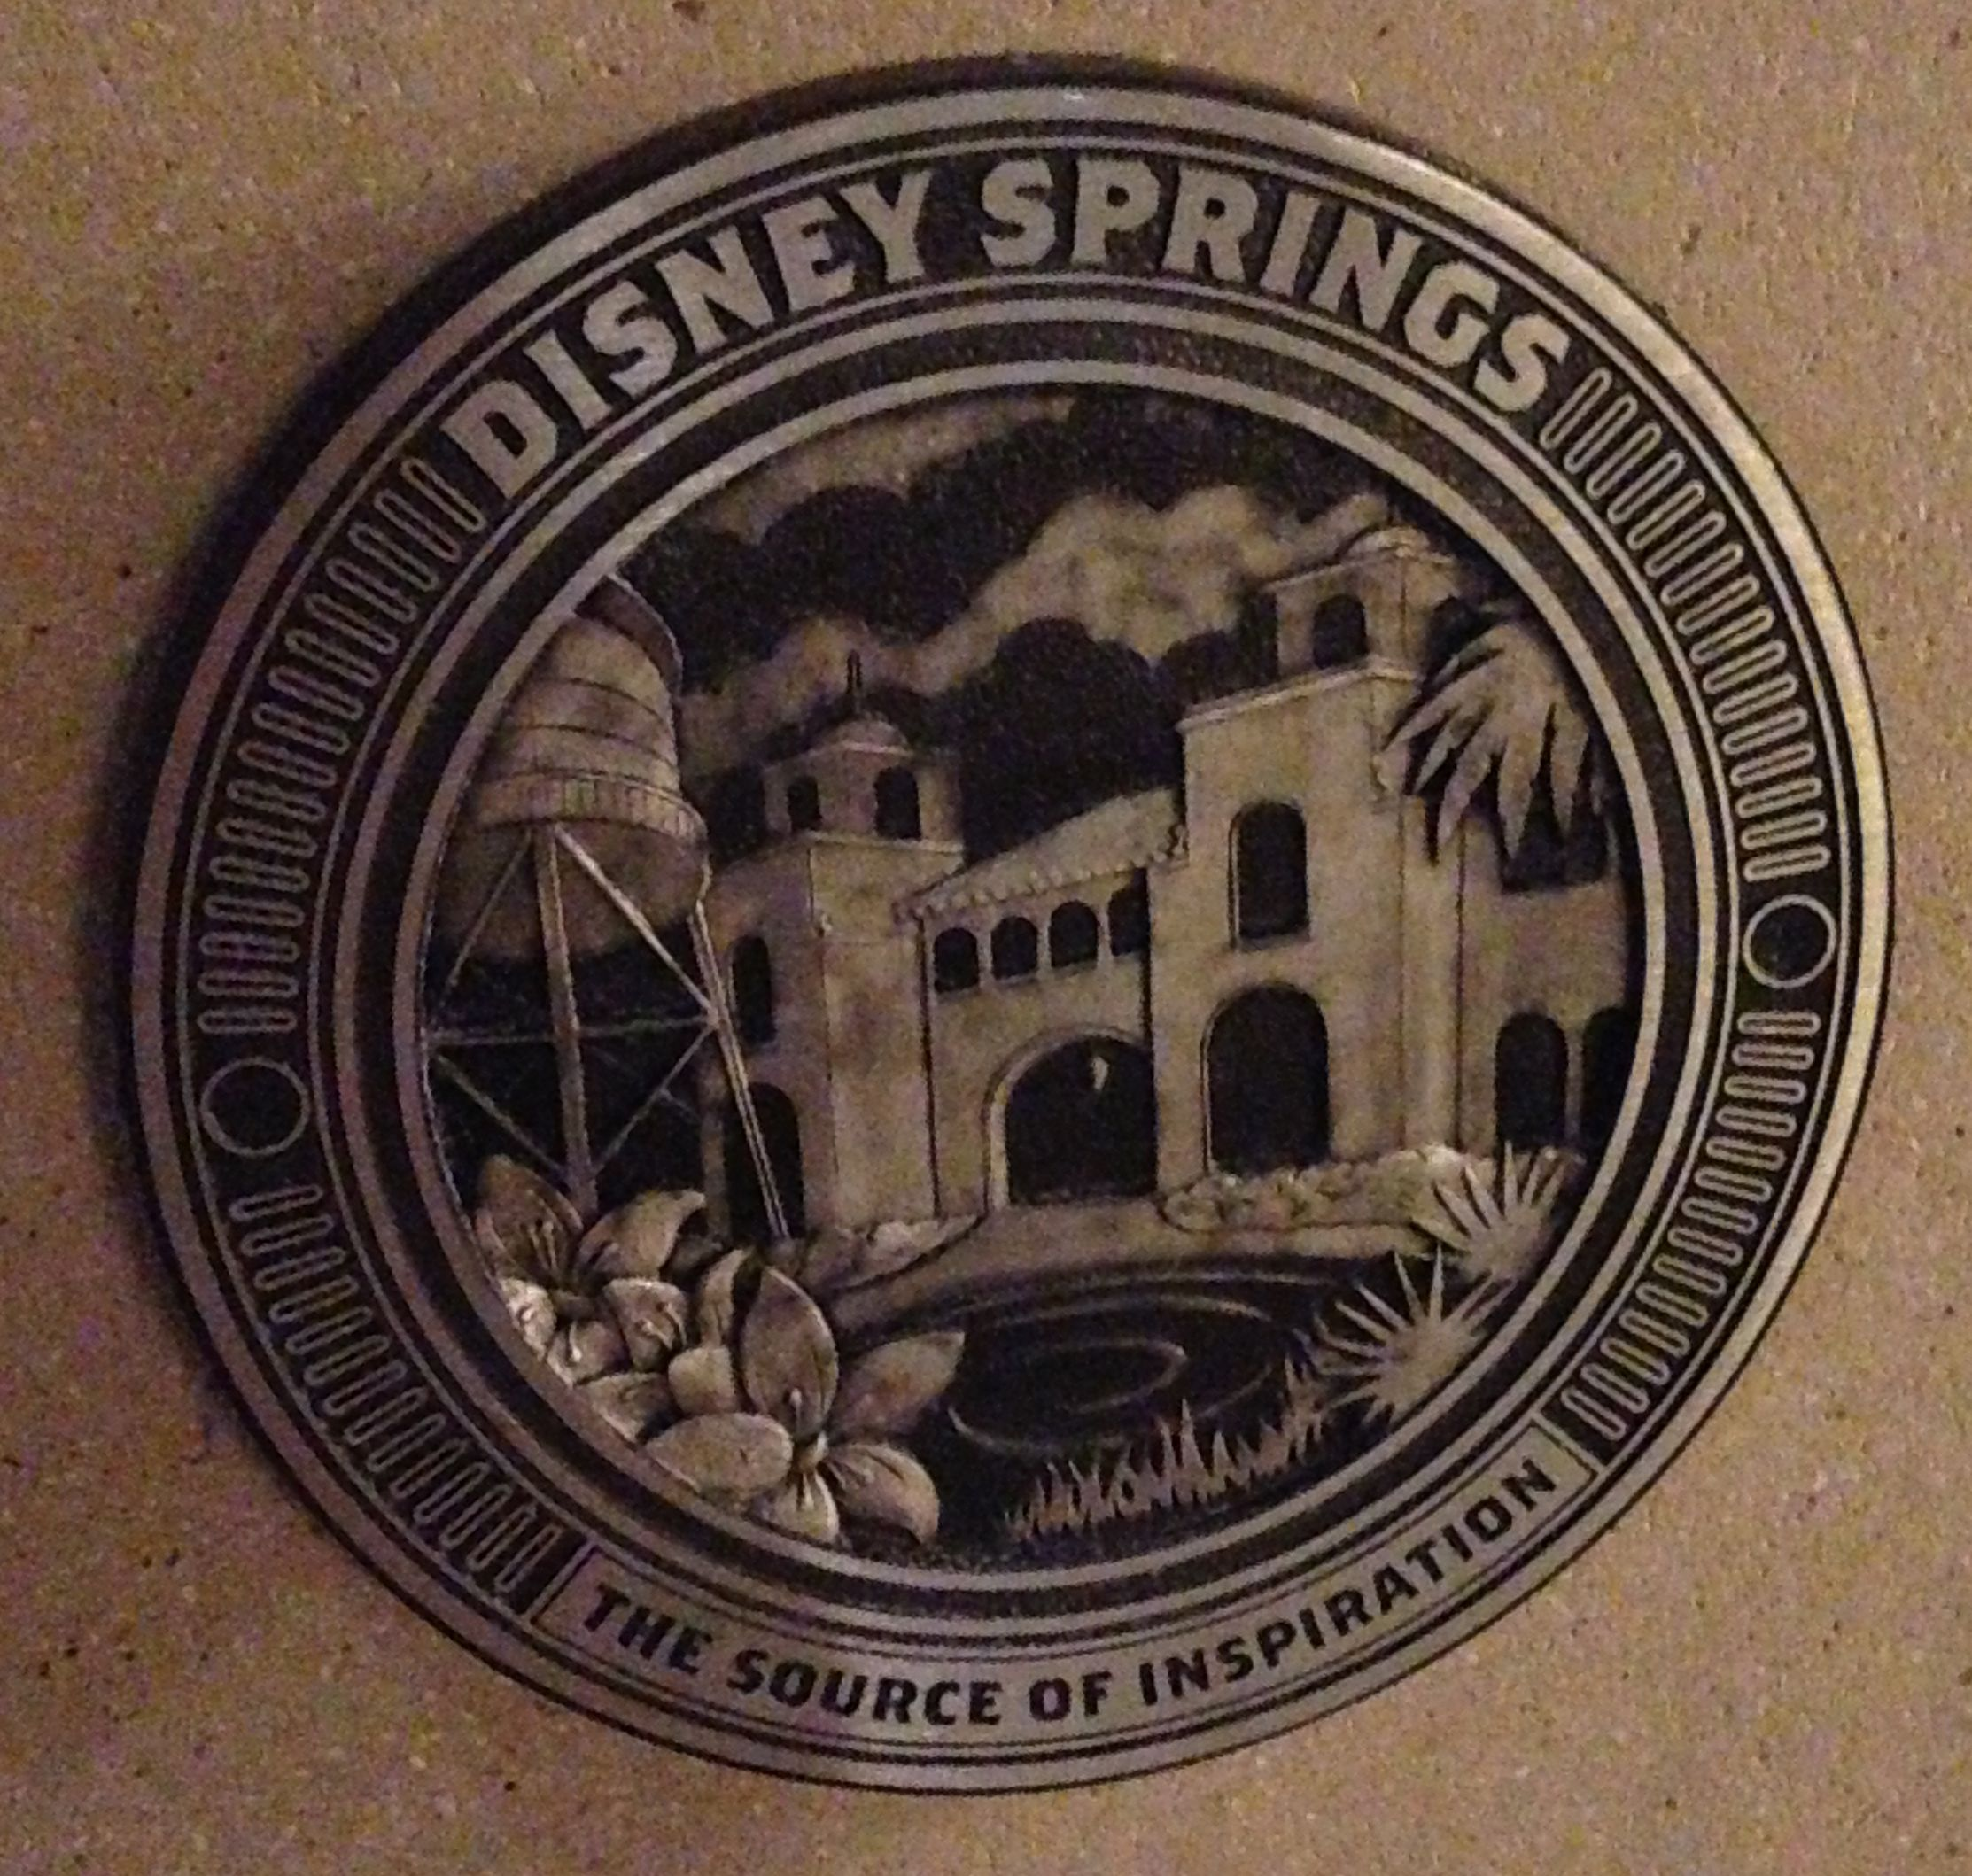 Homecoming: Florida Kitchen and Southern Shine Coming to Disney ...